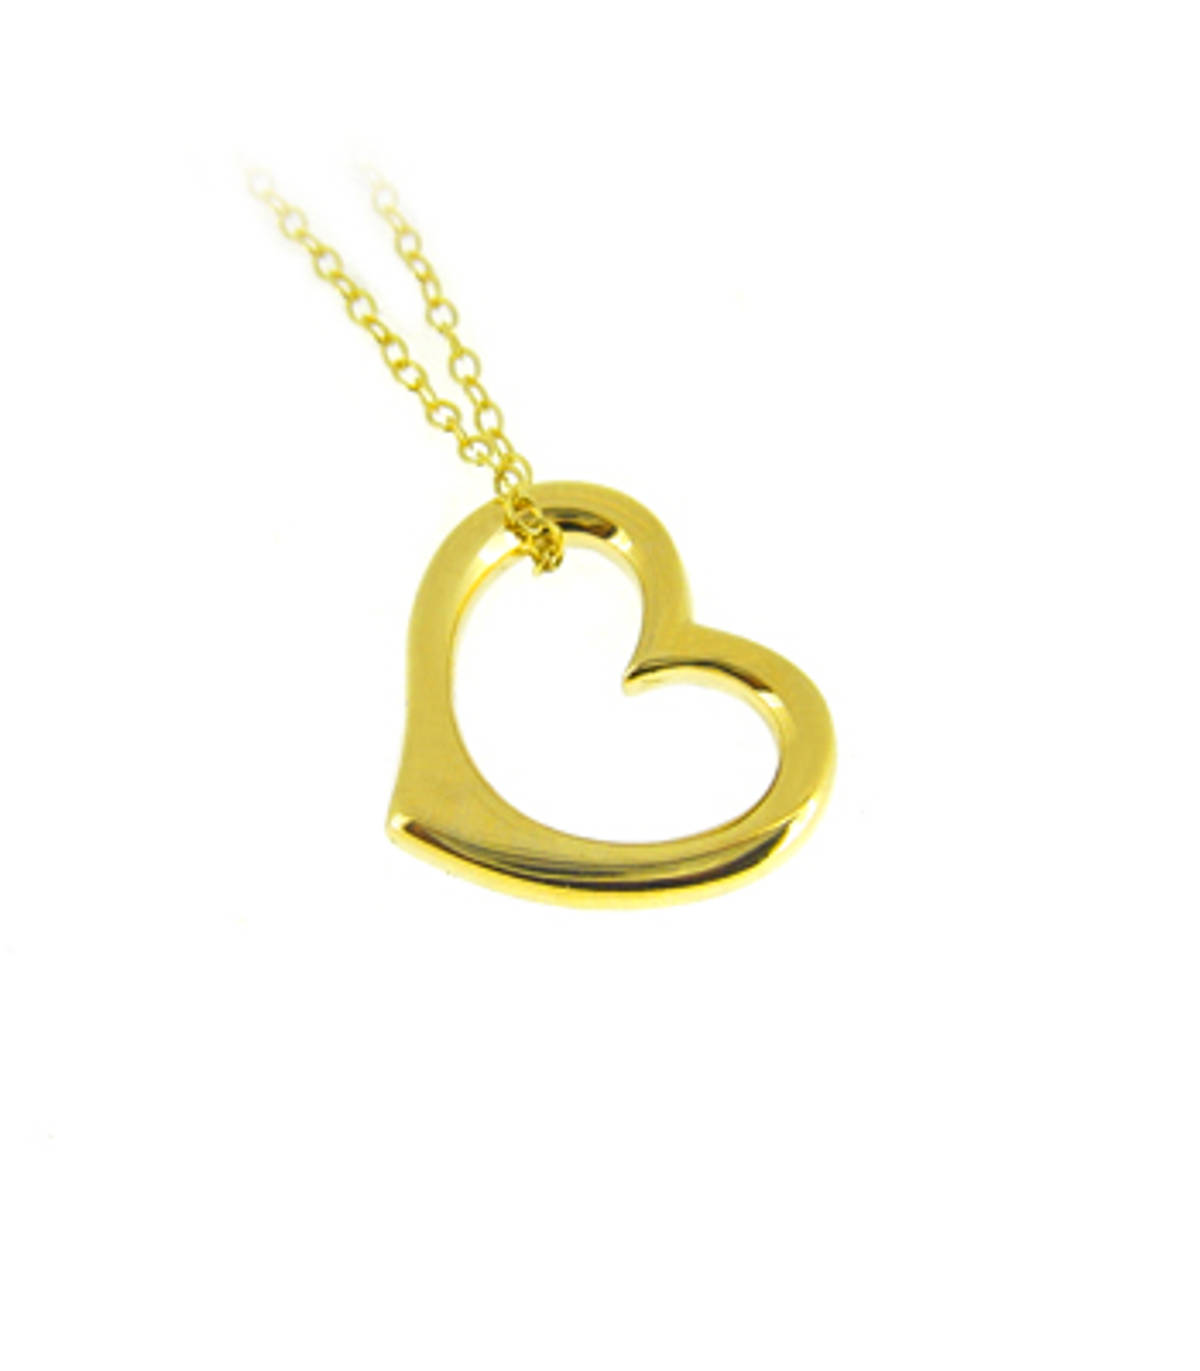 "9k yellow gold open heart pendant on 9k yellow gold 18"" chain 9k yellow gold 18"" chain Metal: 9k yellow gold Length  1.5cm   Width 1.5cm      Made in Ireland"